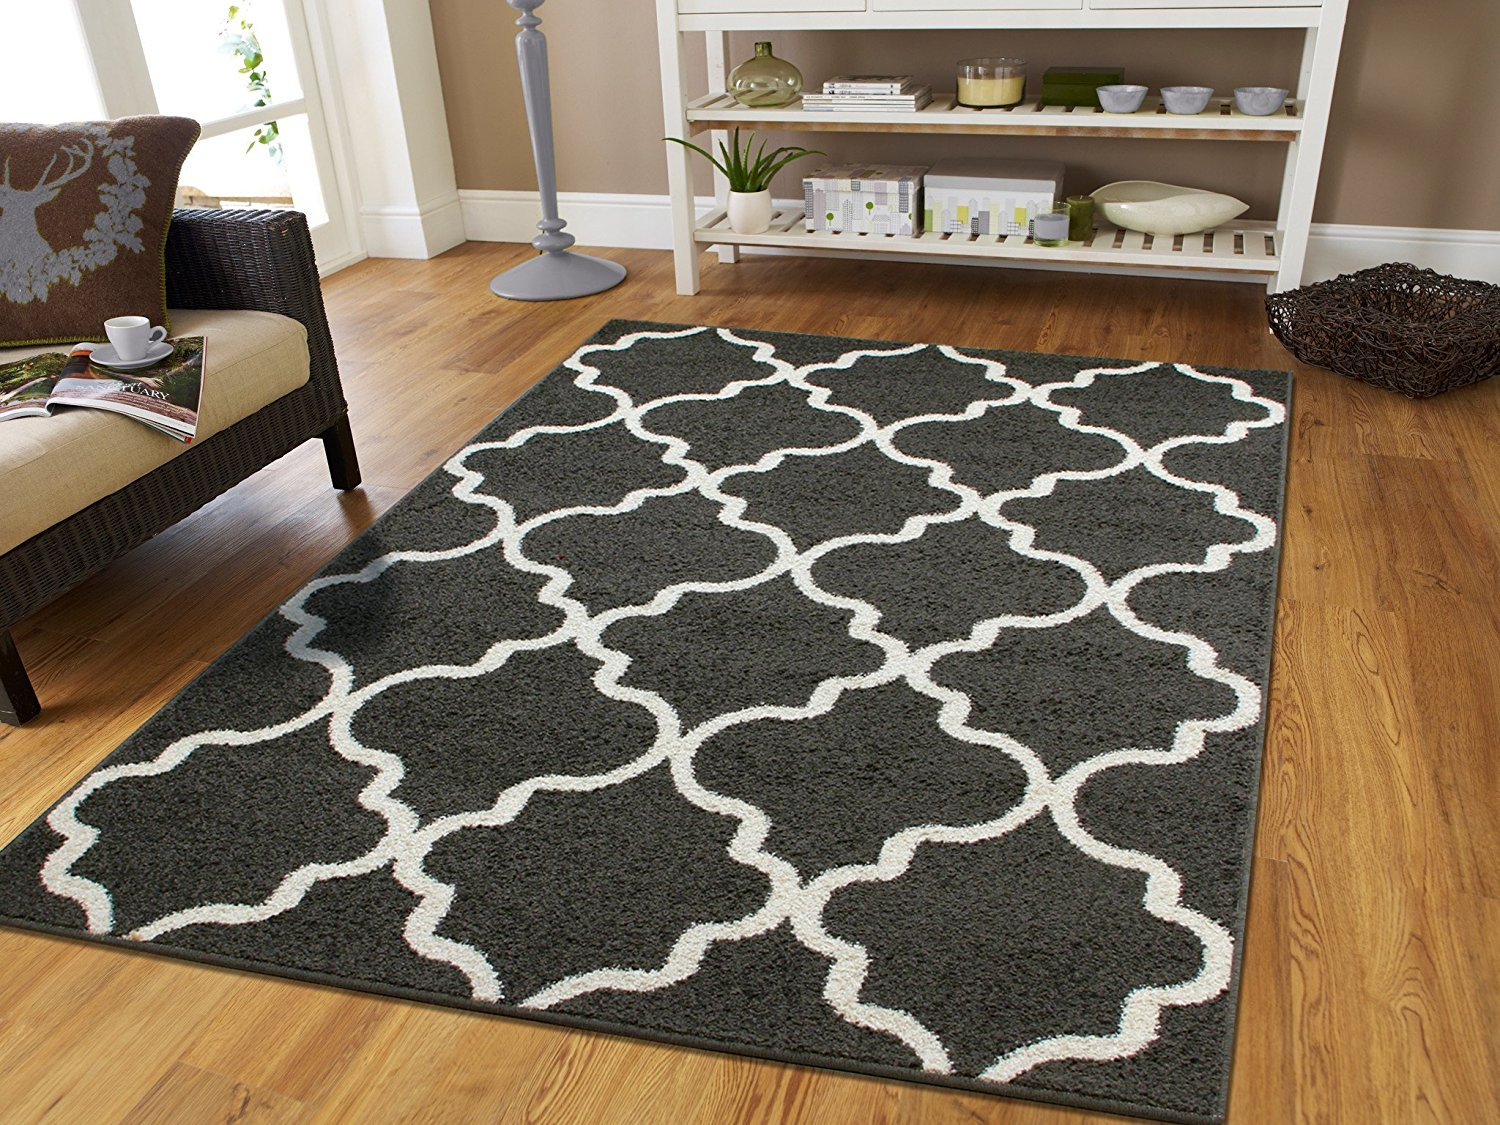 Area Rugs For Living Room 5x8 Dark Gray Modern Rug Walmart Com